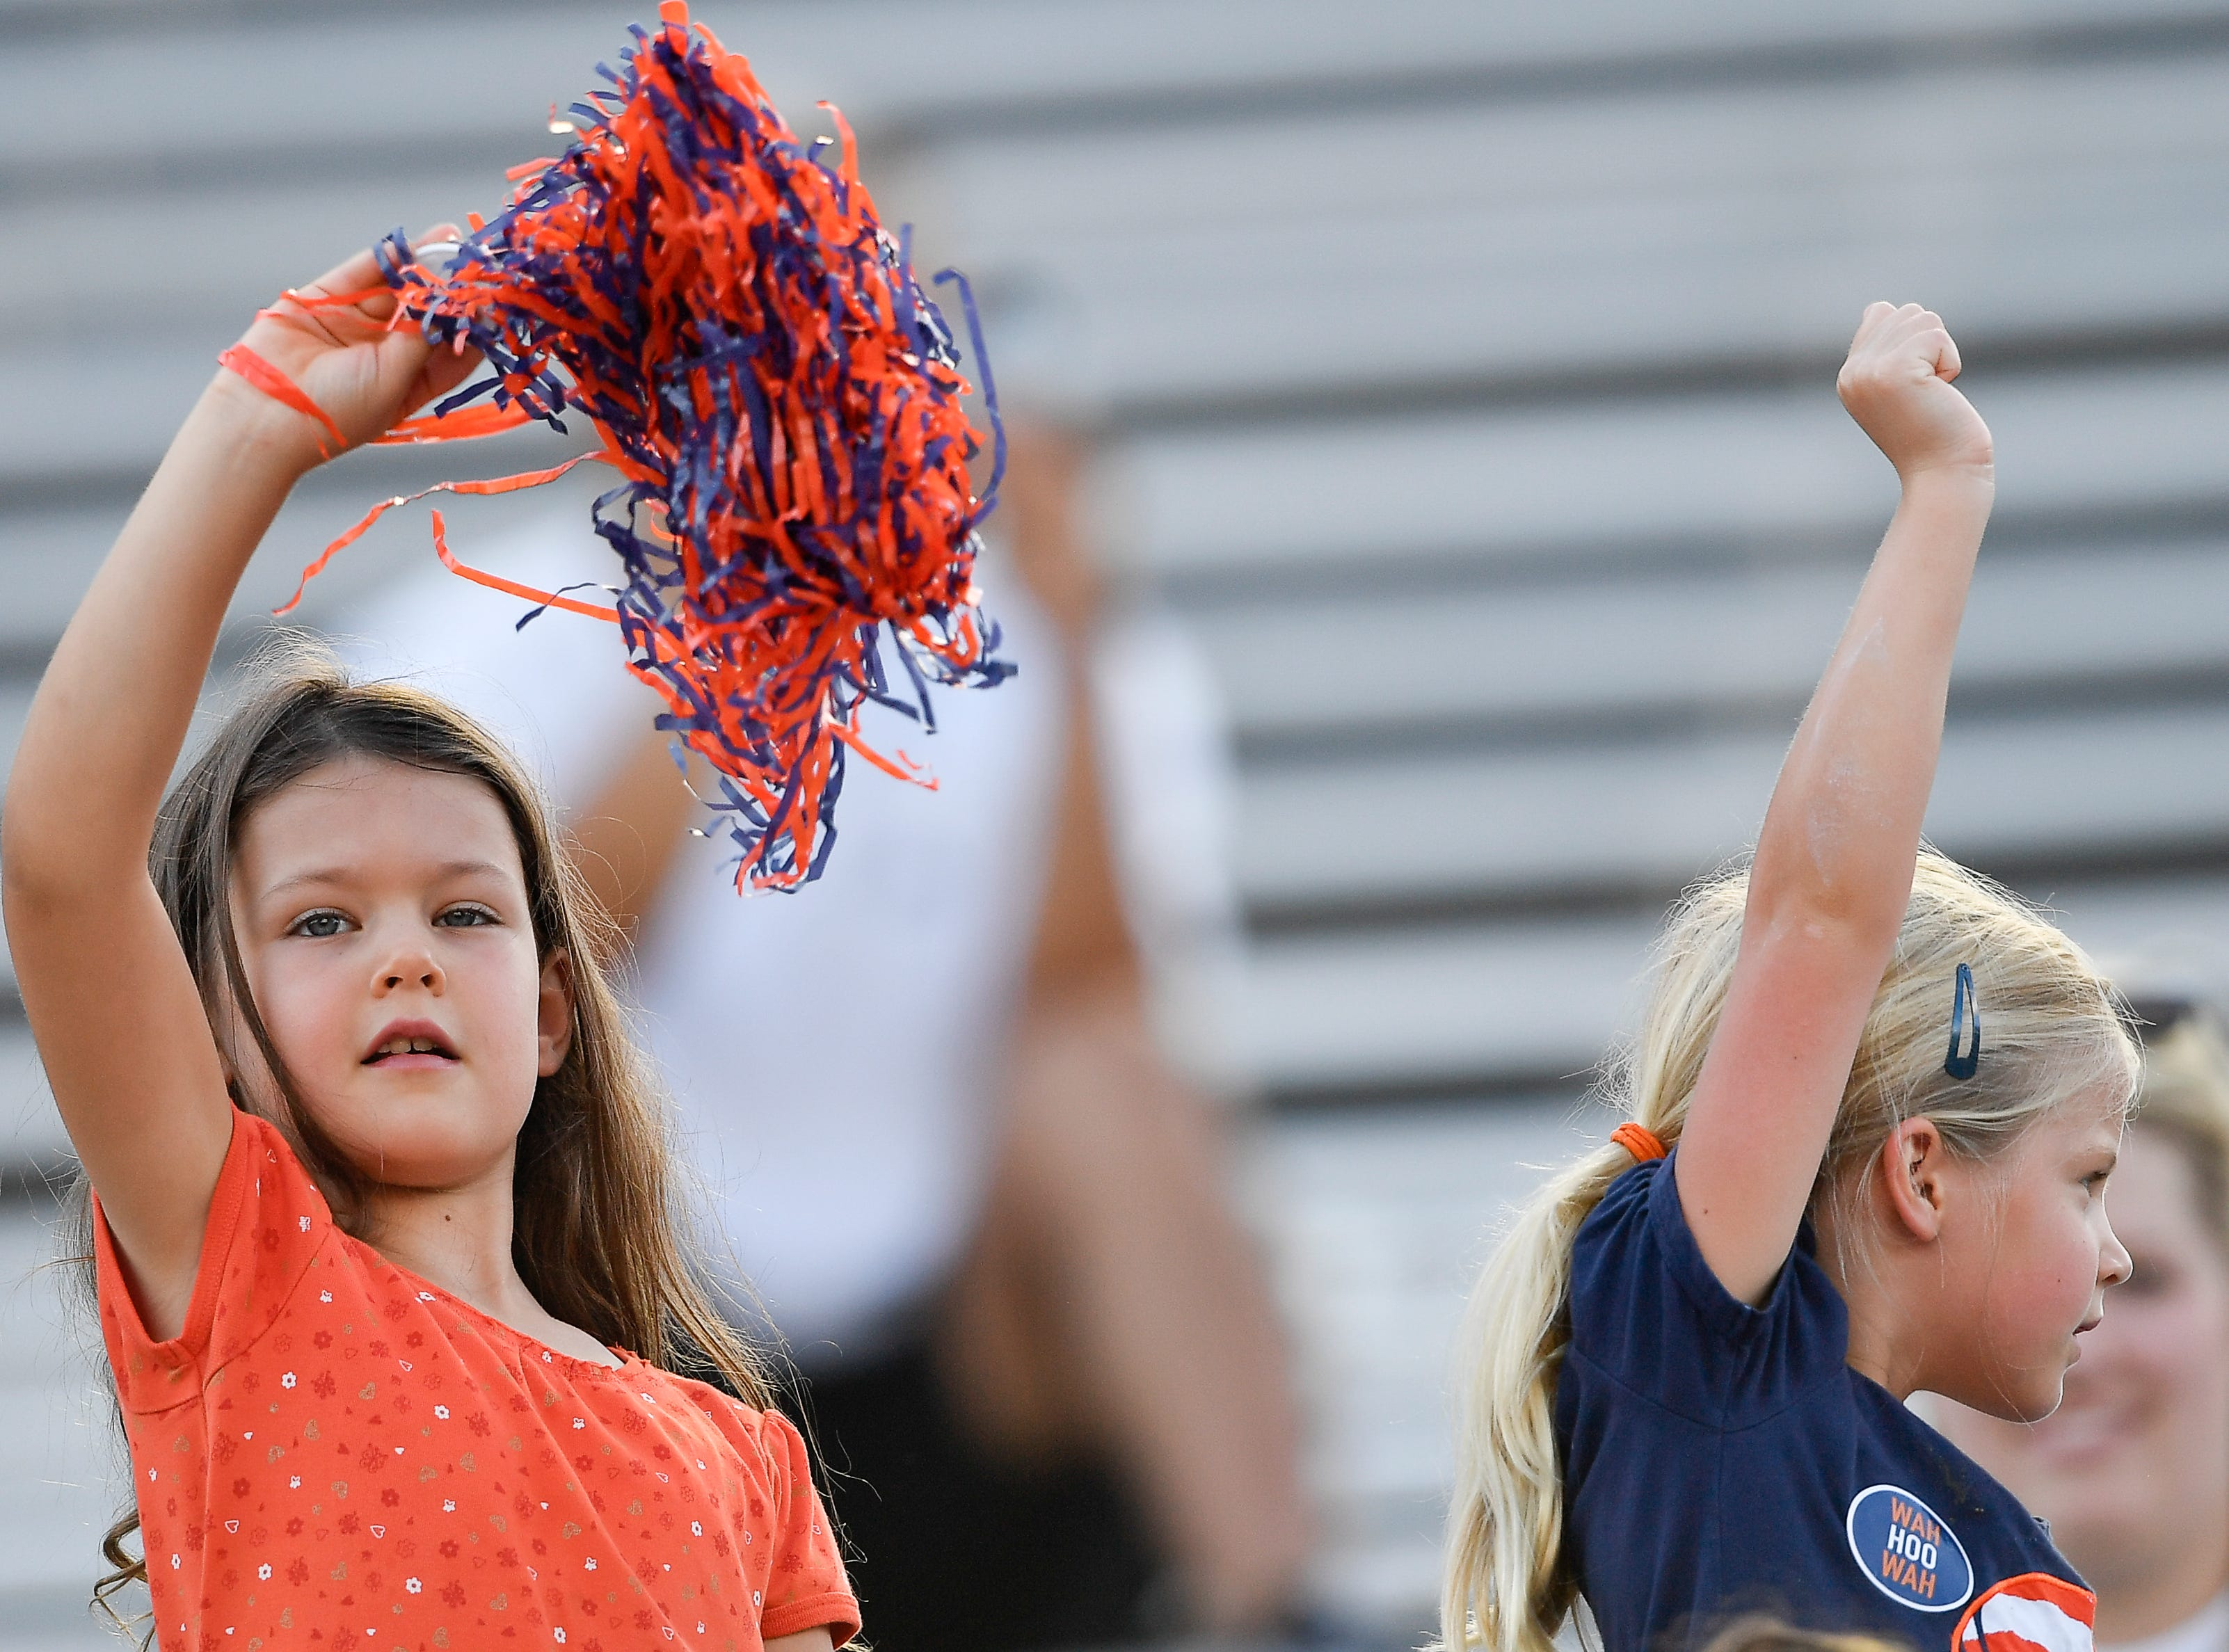 Virginia fans cheer for their Cavaliers as they against Ohio Saturday, Sept. 15, 2018, in Nashville, Tenn. Their football game was moved from Virginia to Tennessee to avoid the effects of Hurricane Florence.